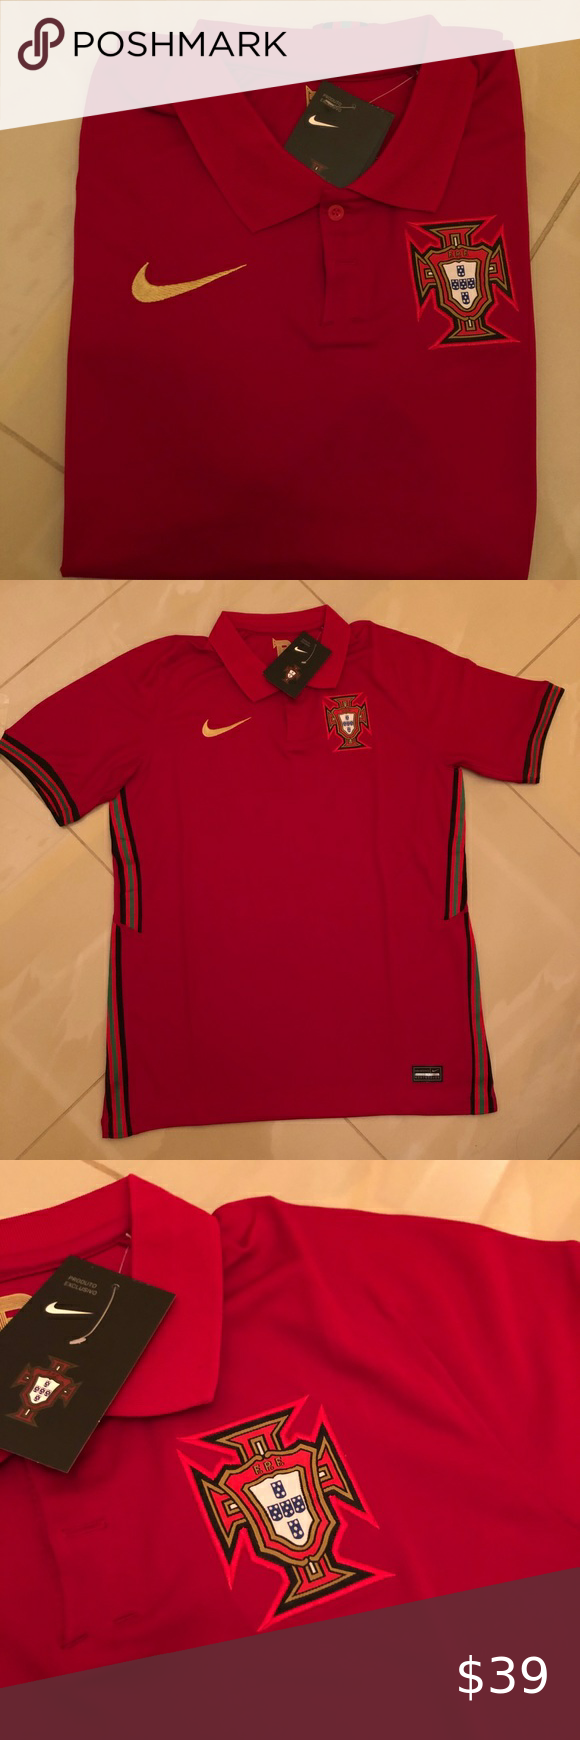 Portugal Home Soccer Jersey 2020 Nwt En 2020